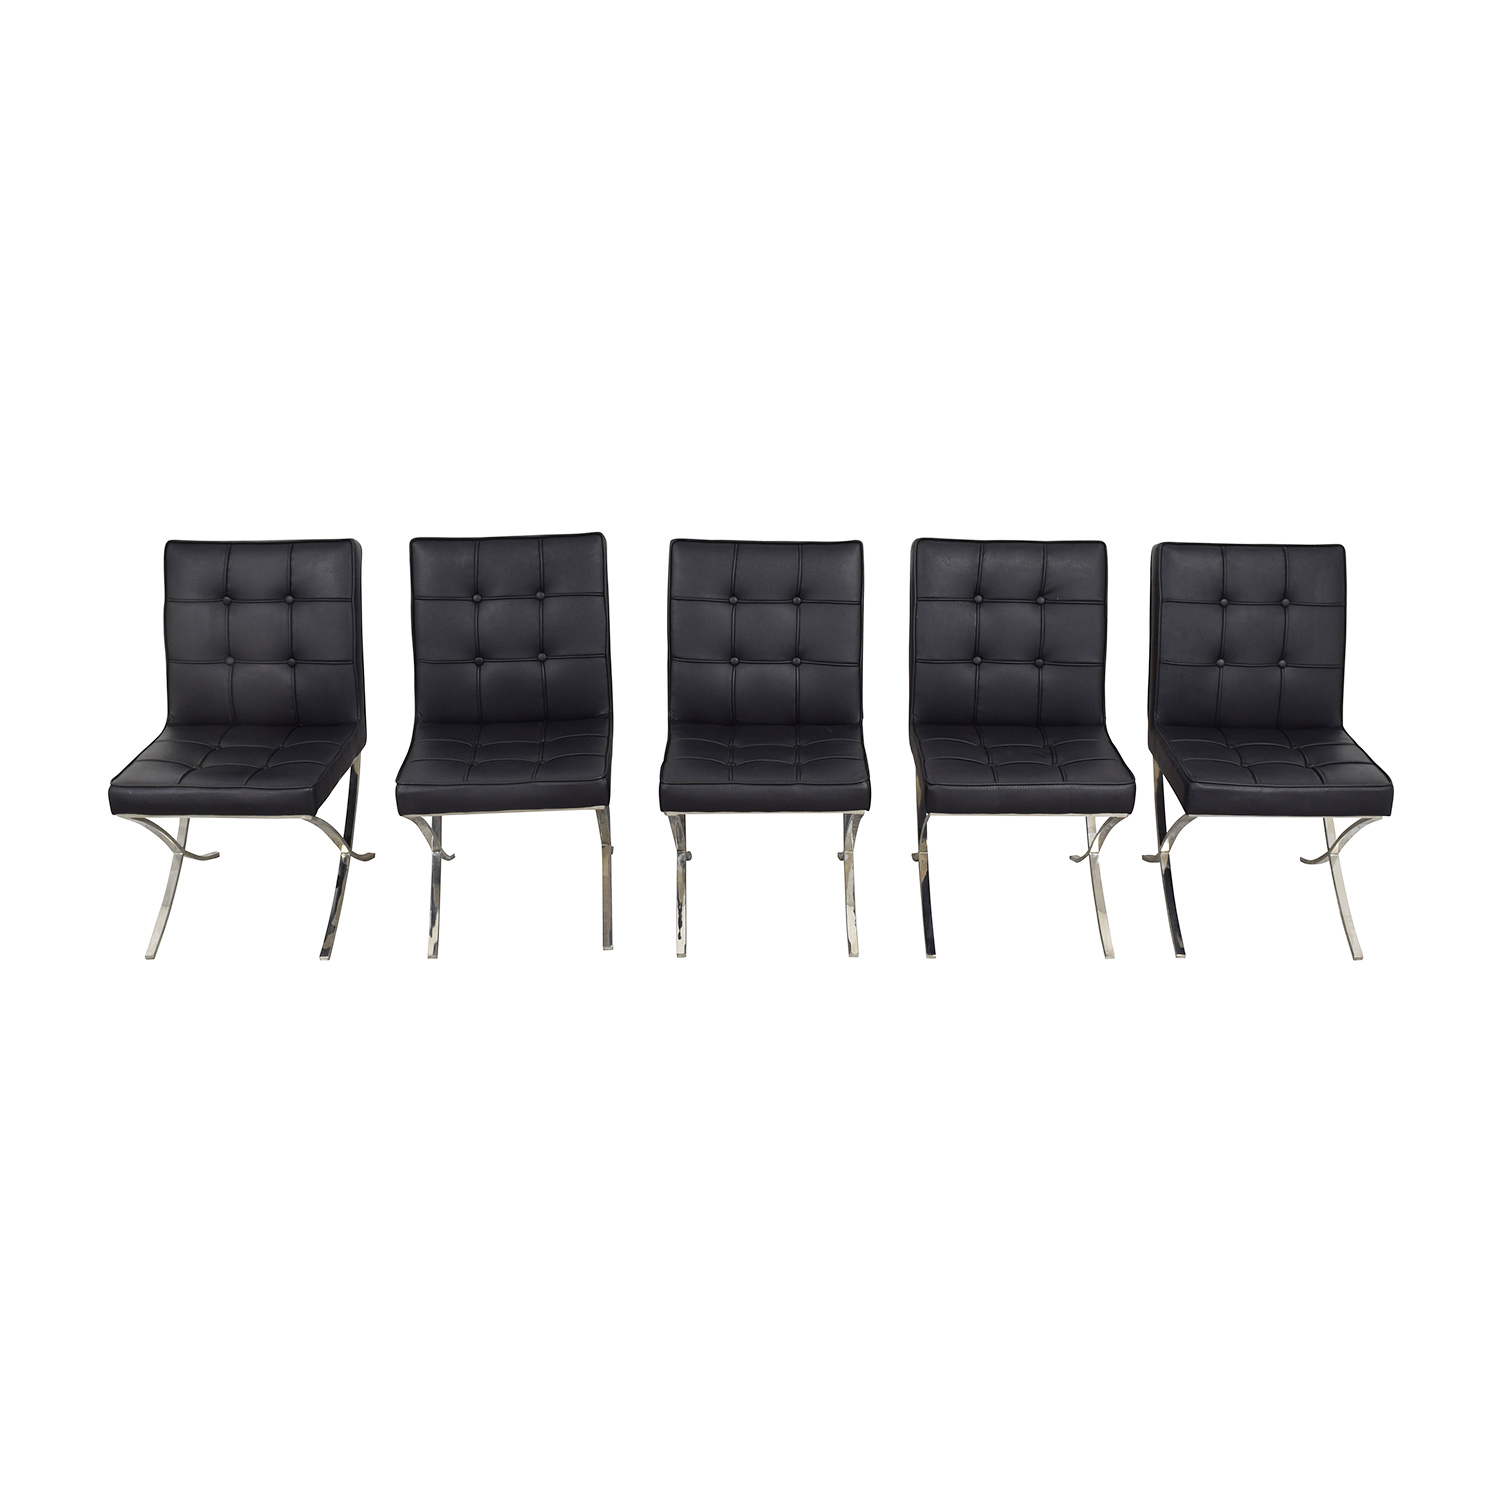 OFF West Elm West Elm Black Tufted Leather Chairs Chairs